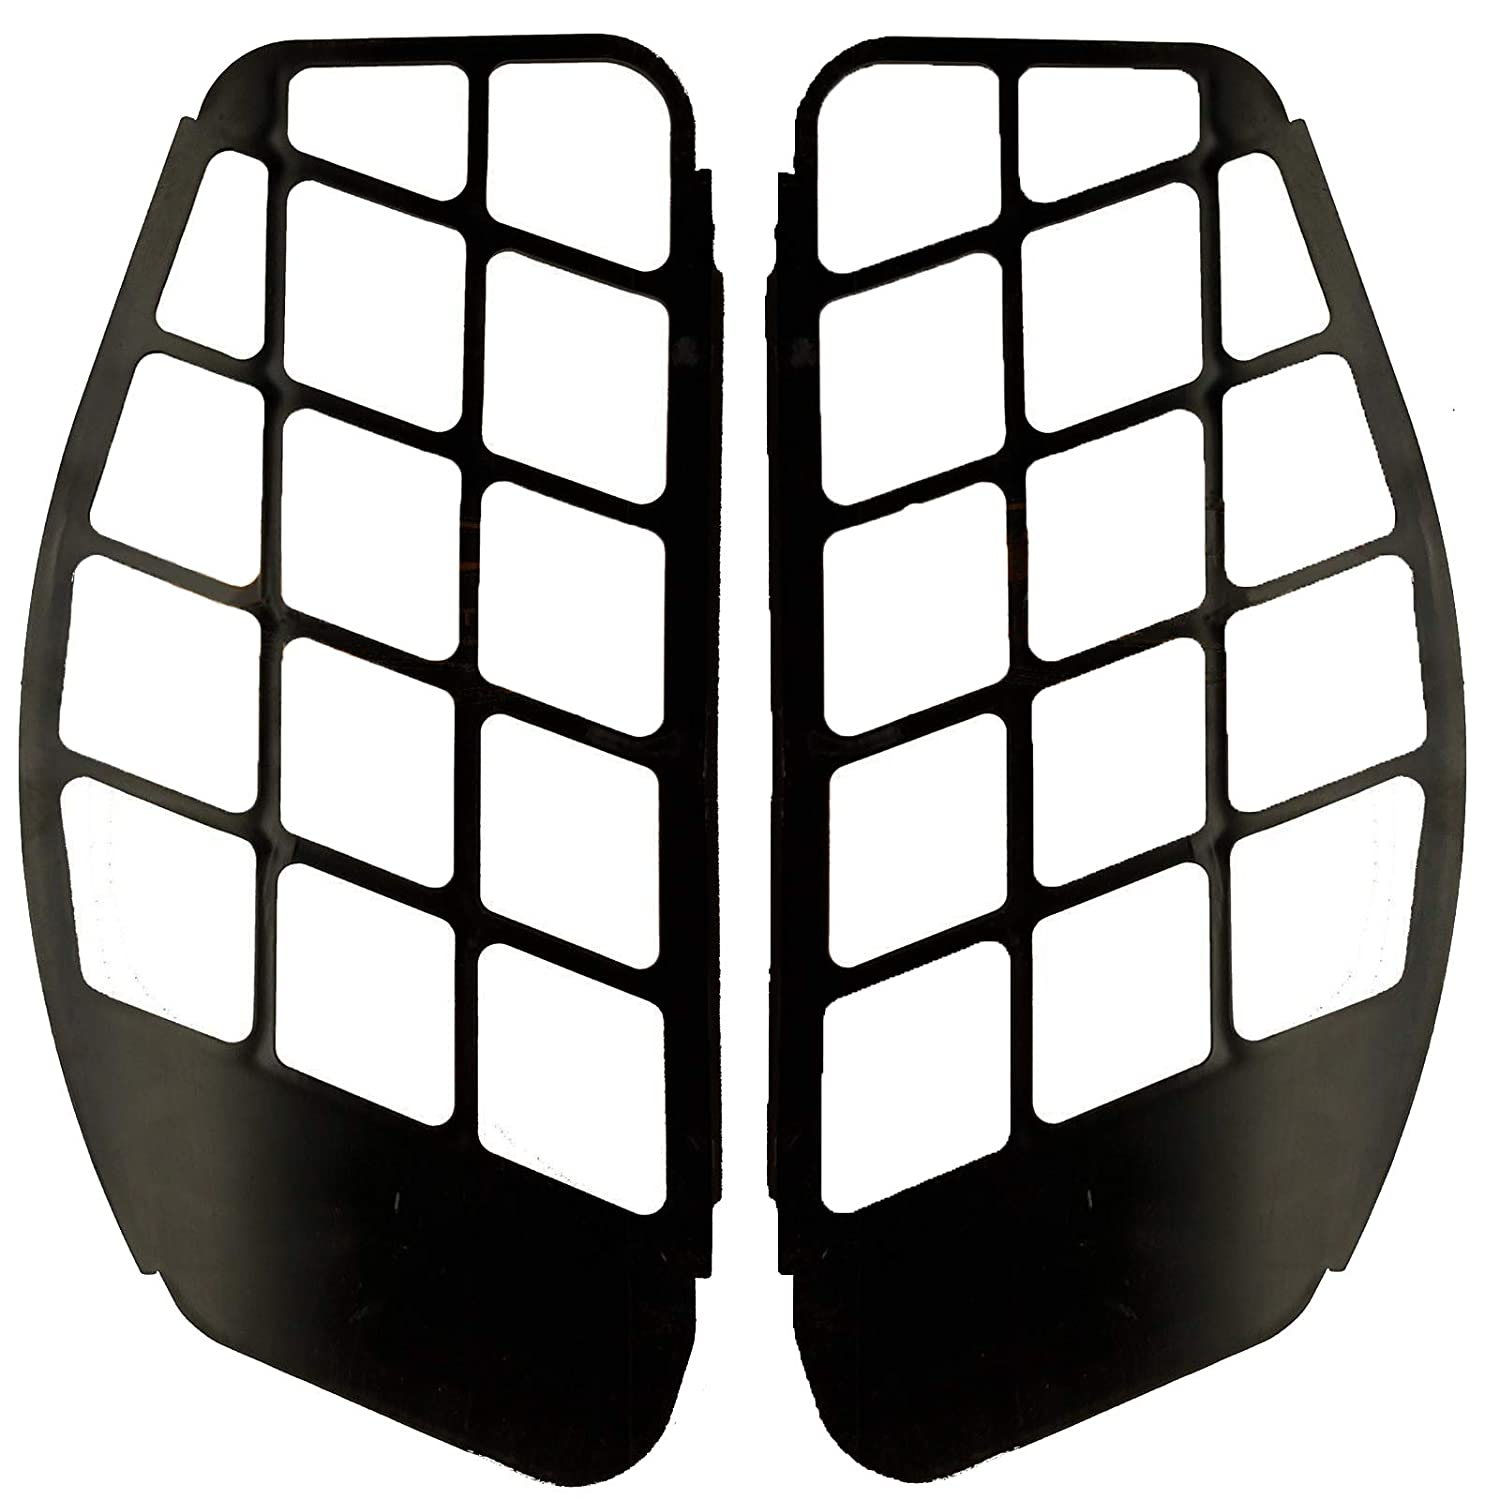 Friday Part Side Grill Air Discharge Louver Plastic 6716571 & 6716573 for Bobcat Skid Steer Loader 653 751 753 763 773 7753 853 863 864 S130 S150 S160 S175 S185 S205 T140 T180 T190